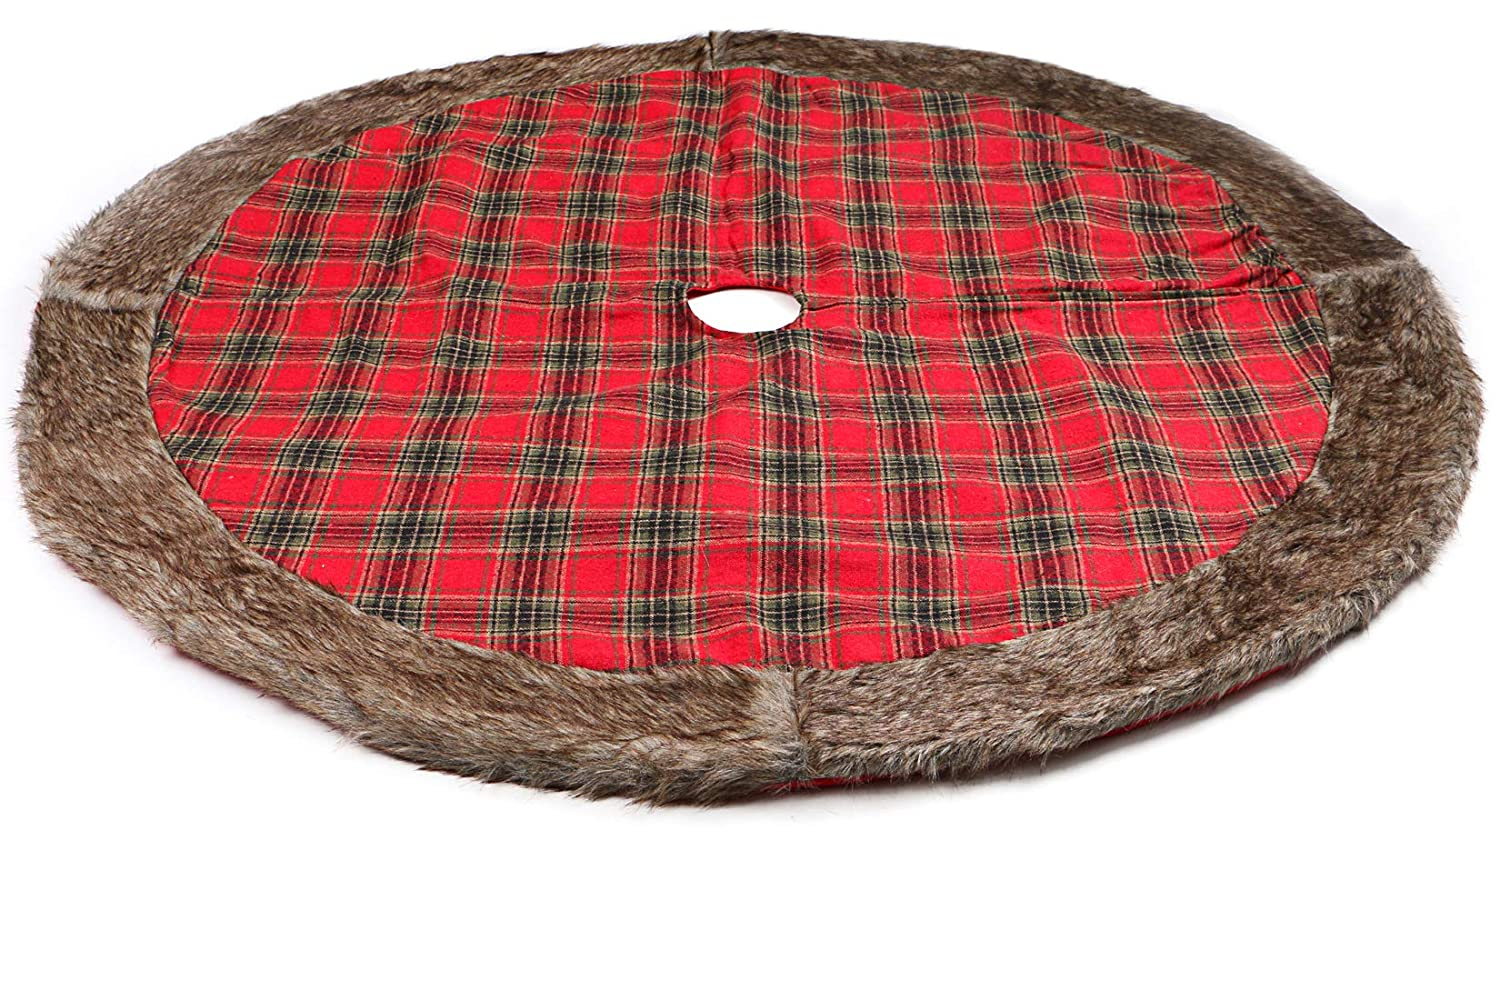 Wishdiam Linen Burlap Christmas Tree Skirt Red Black Plaid Ruffle Edge Border Large 48 inches Round Indoor Outdoor Mat Xmas Party Holiday Decorations